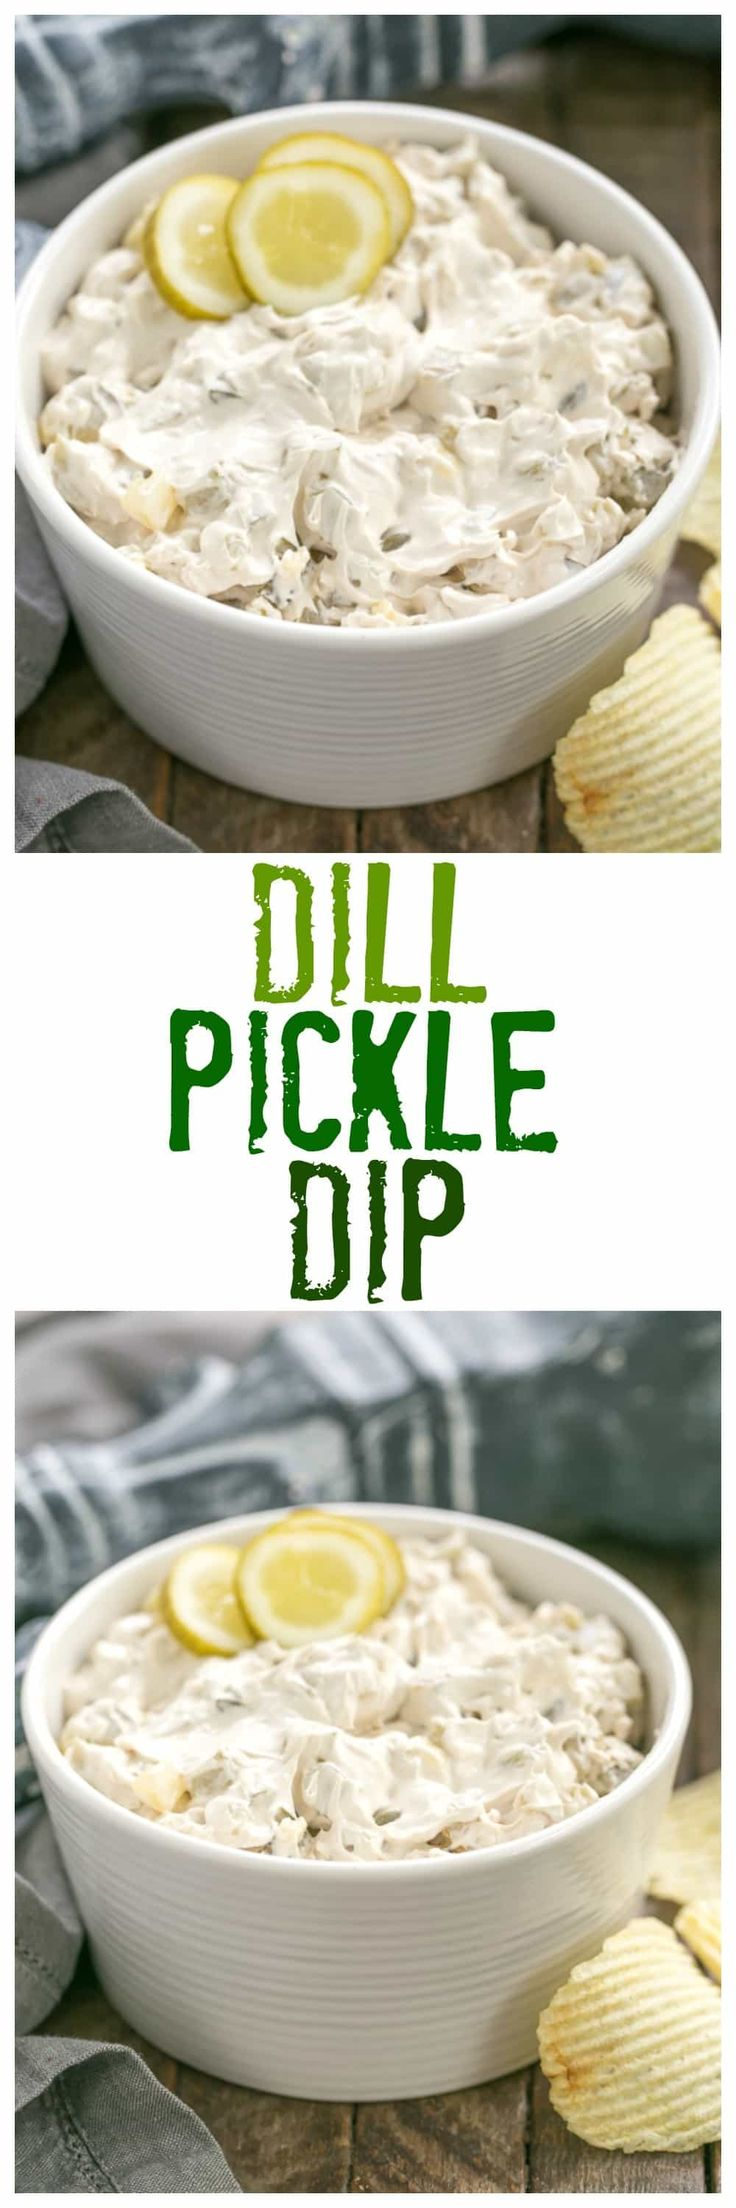 Easy Dill Pickle Dip | Get prepared for rave reviews! Only 5 ingredients! @lizzydo